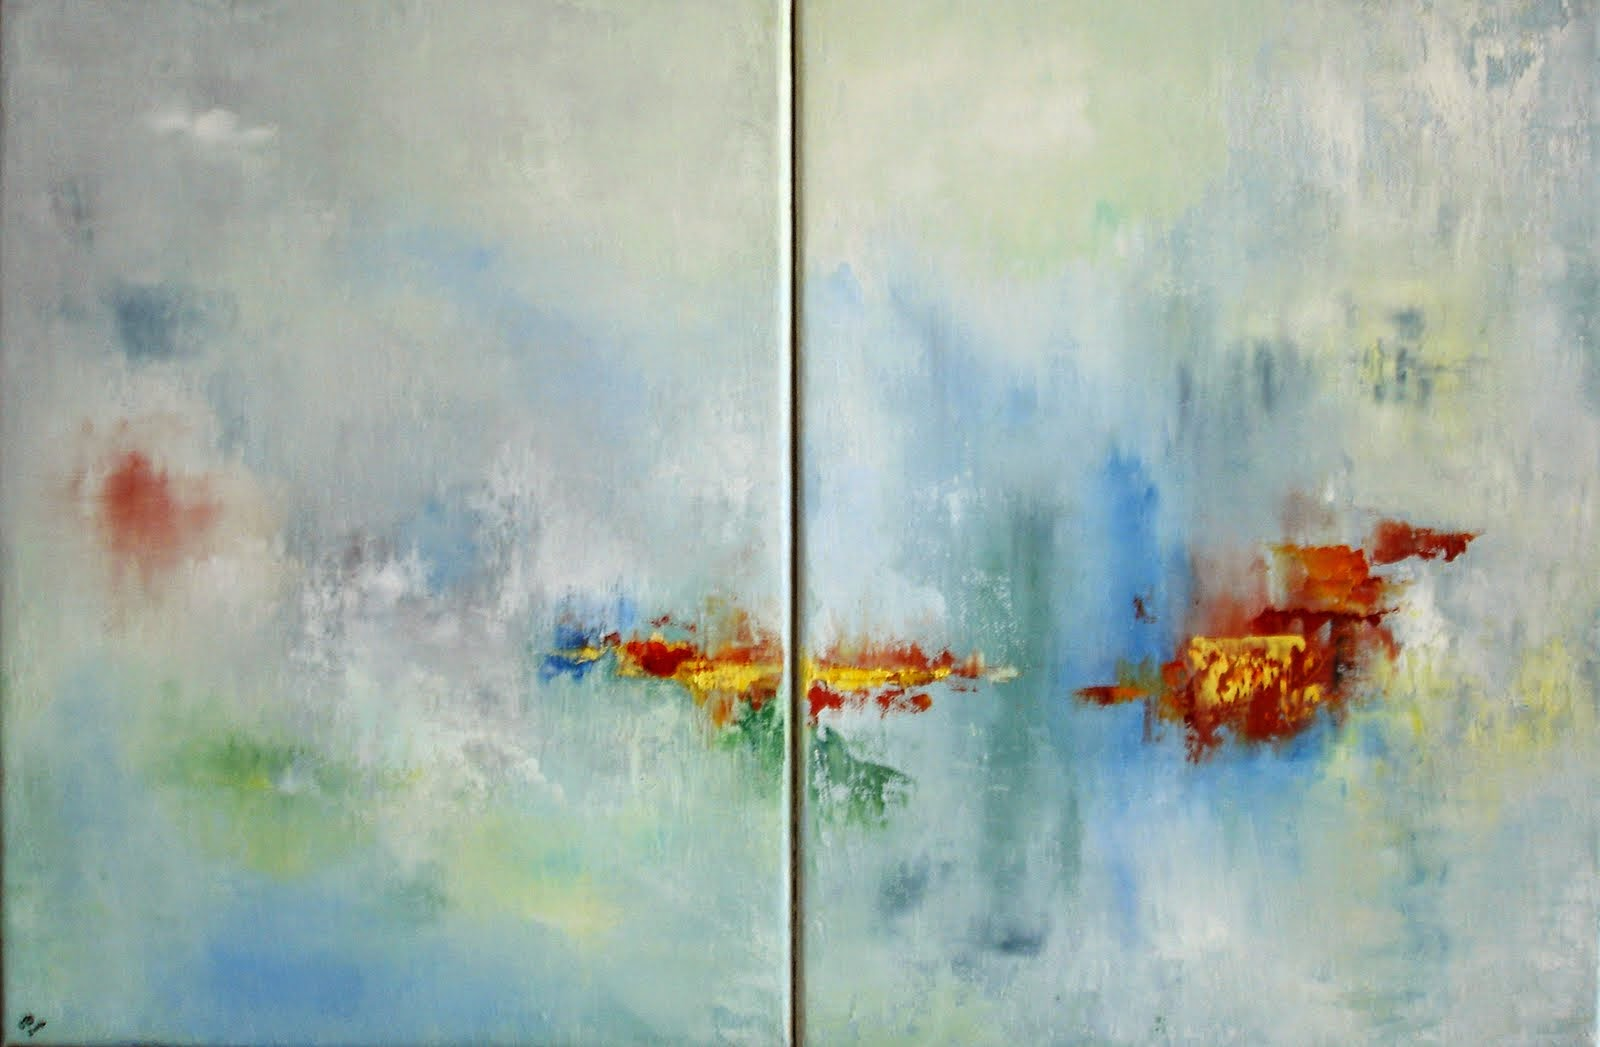 Echo duo (diptyque) 60x40